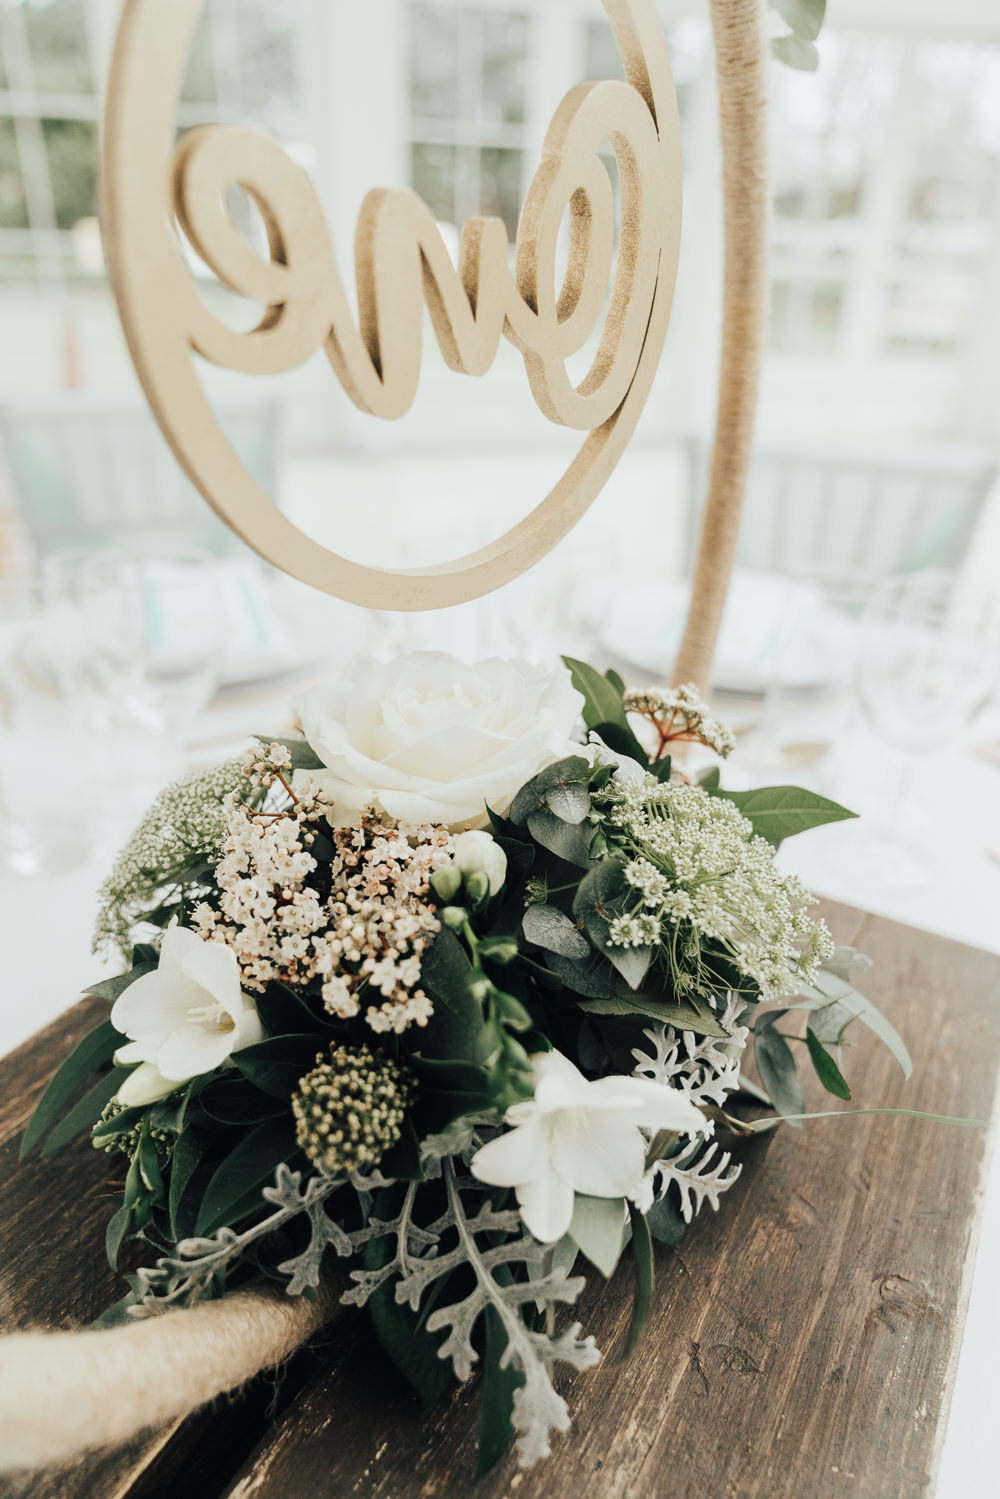 Table Flowers Centrepiece Greenery Foliage Rose Hoop Wedding Ideas Rebecca Carpenter Photography